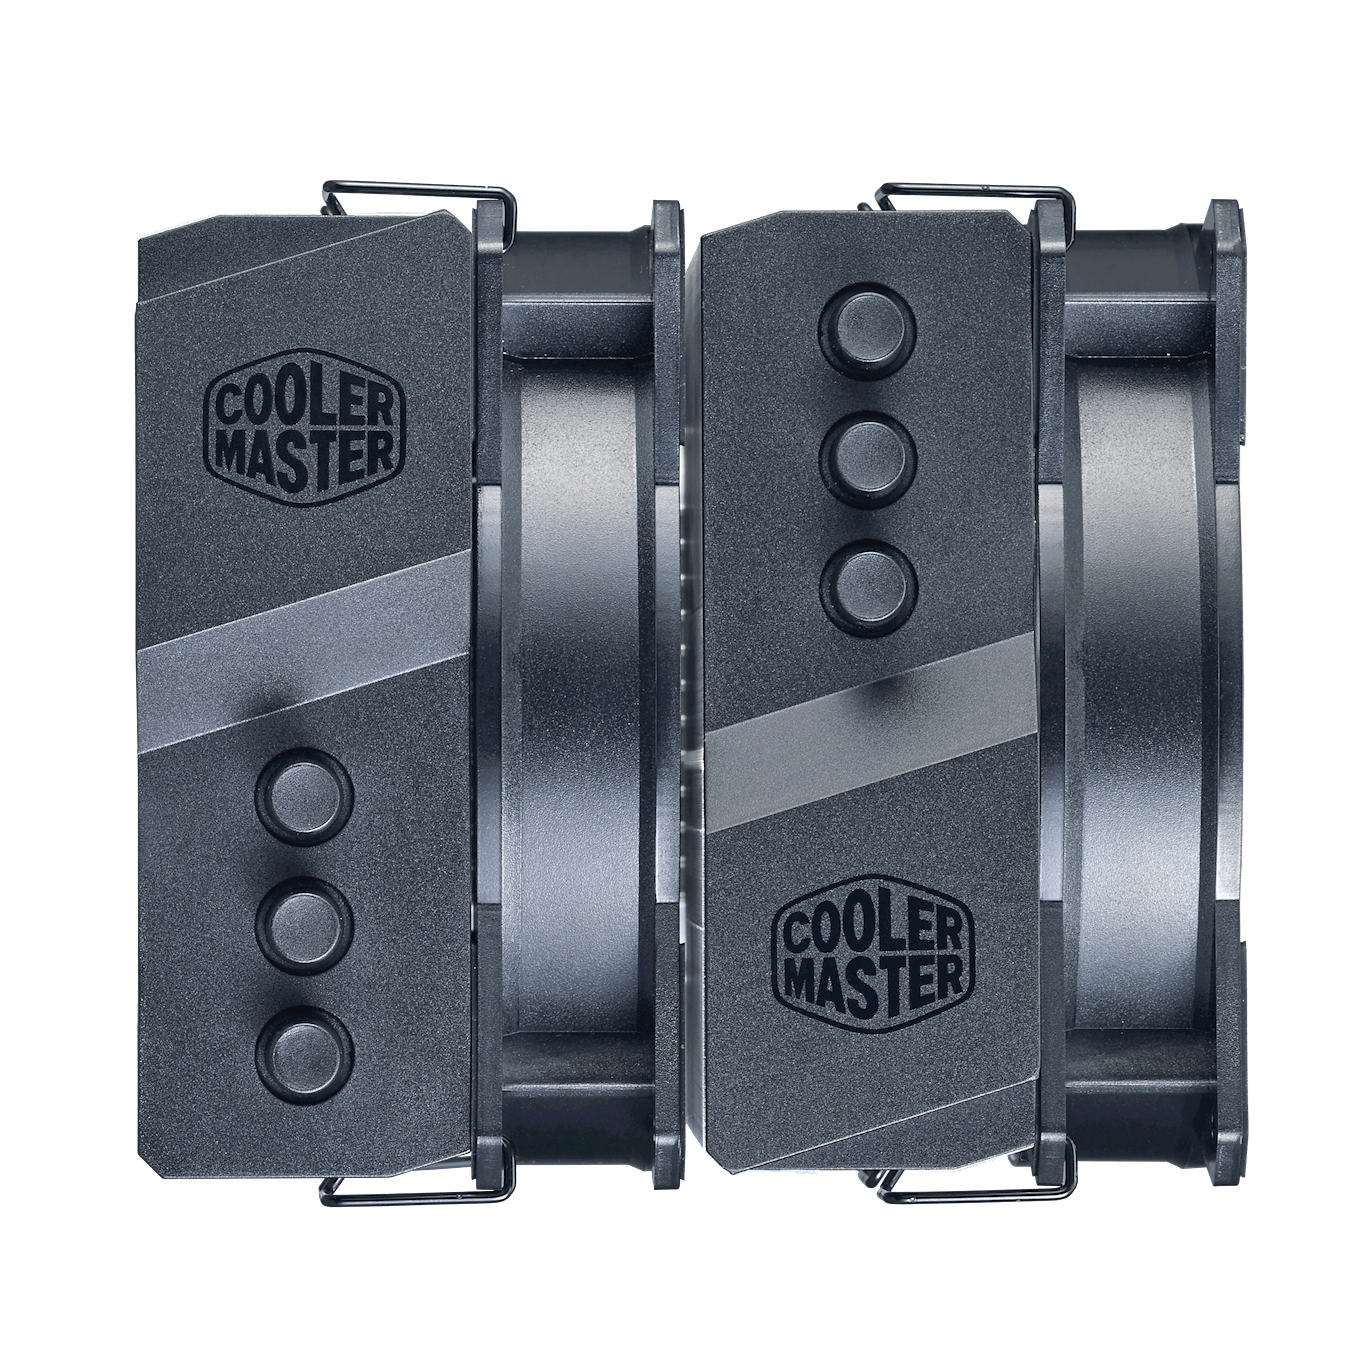 Twin-Tower heatsink doubles the performance with aesthetic top cover design.